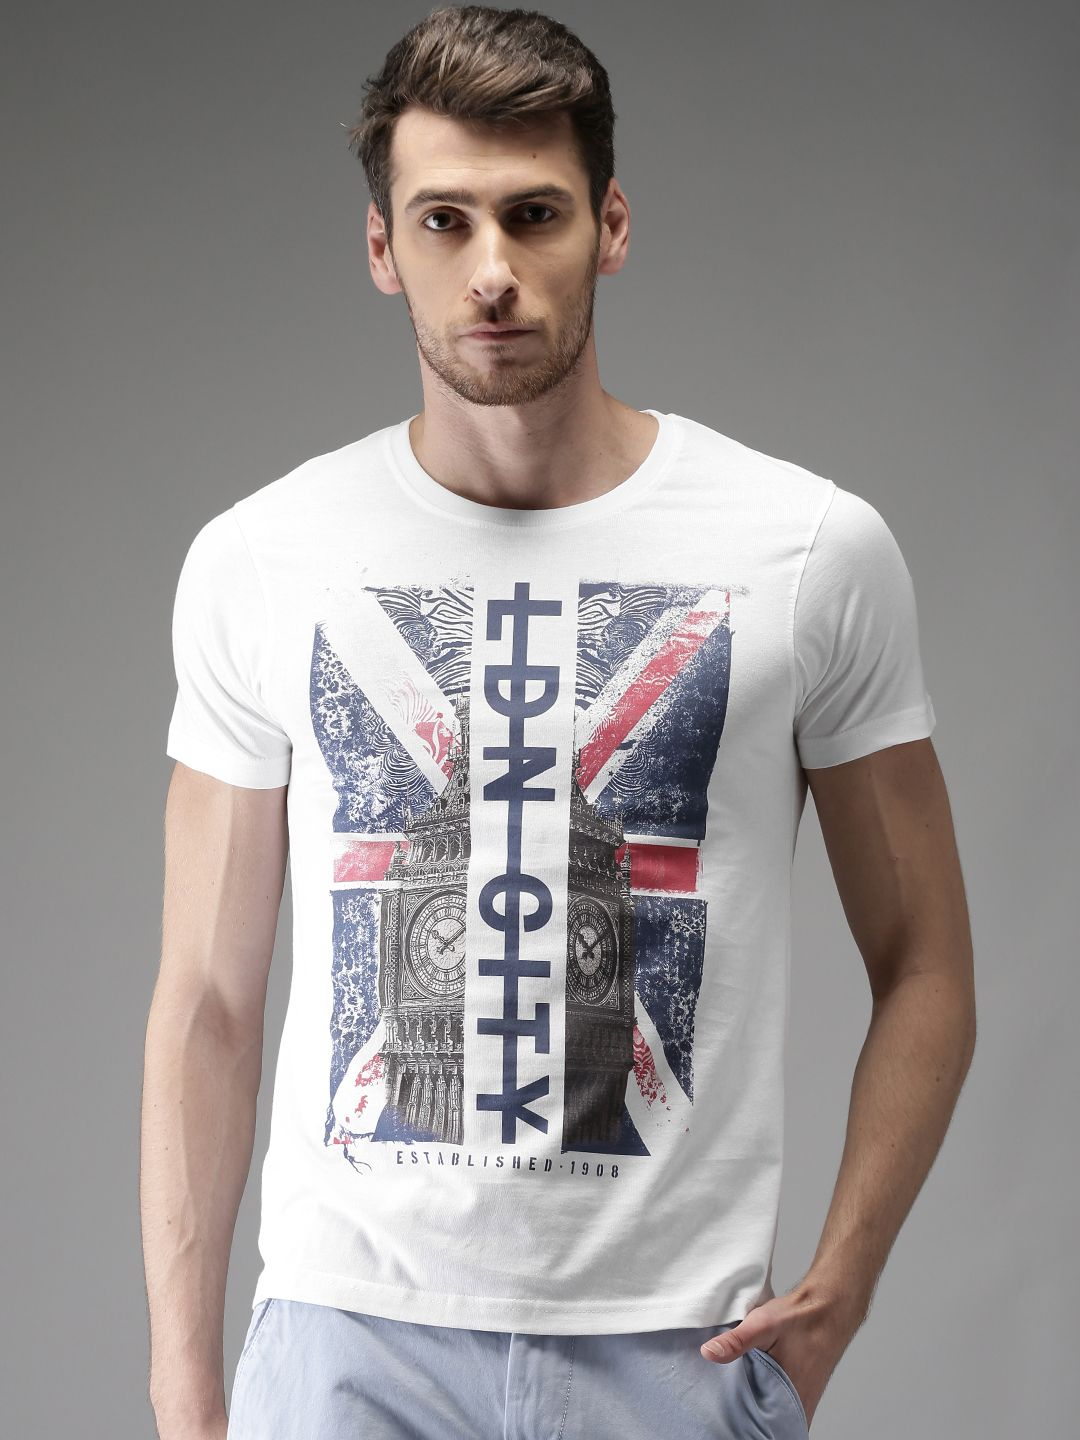 248a5f59881 Buy HERE NOW Men White Printed T Shirt - Tshirts for Men 2365764 ...